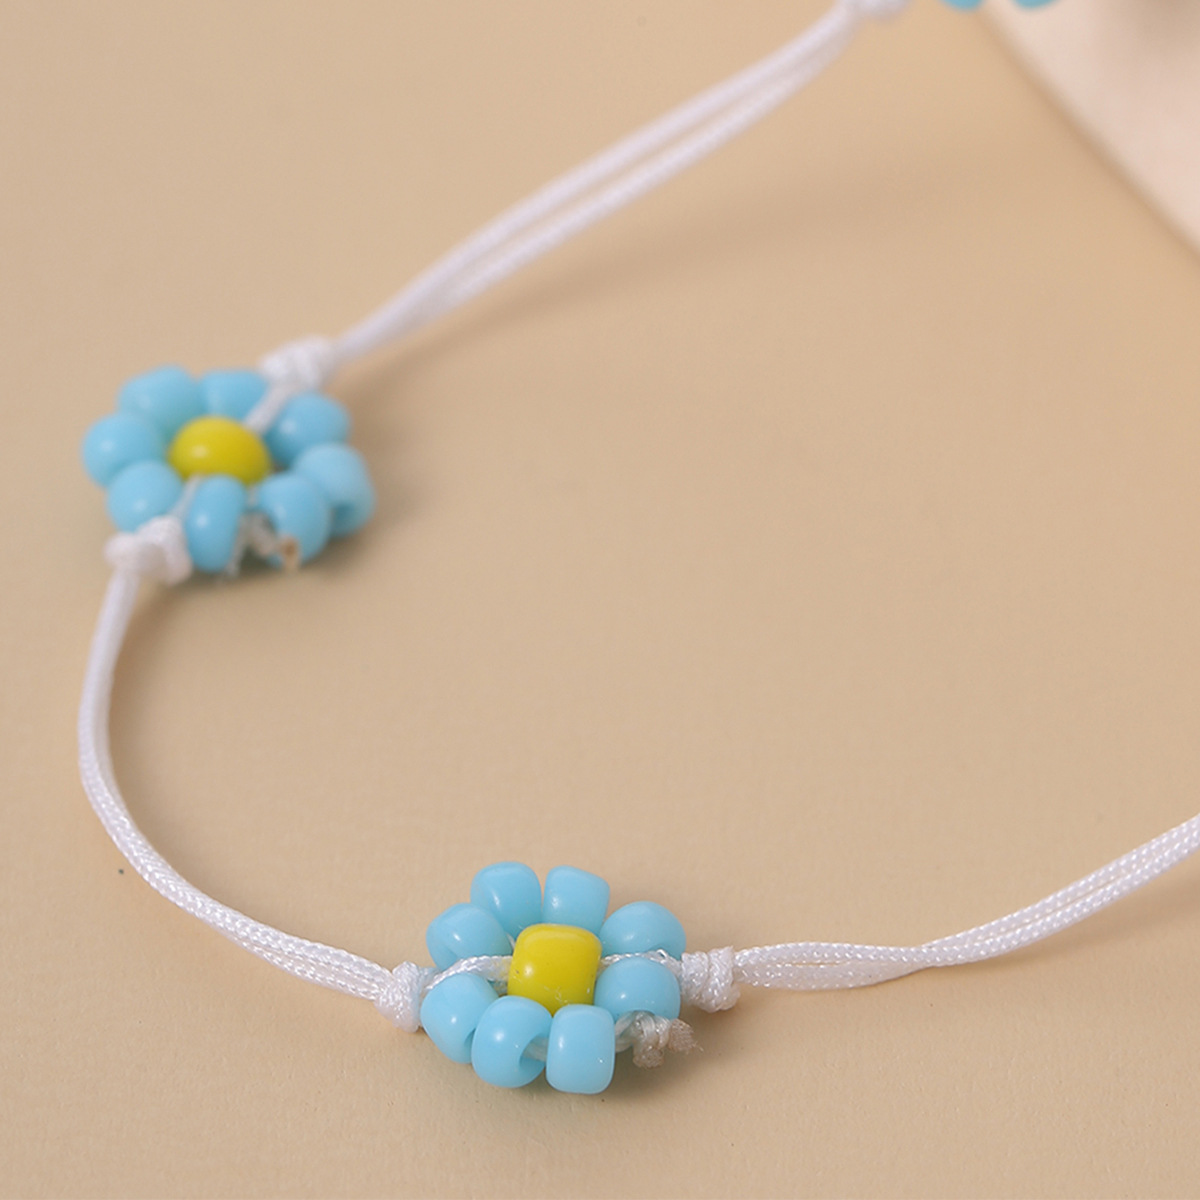 fashion jewelry retro ethnic color beaded necklace creative rice bead woven flower geometric necklace wholesale nihaojewelry NHXR238230